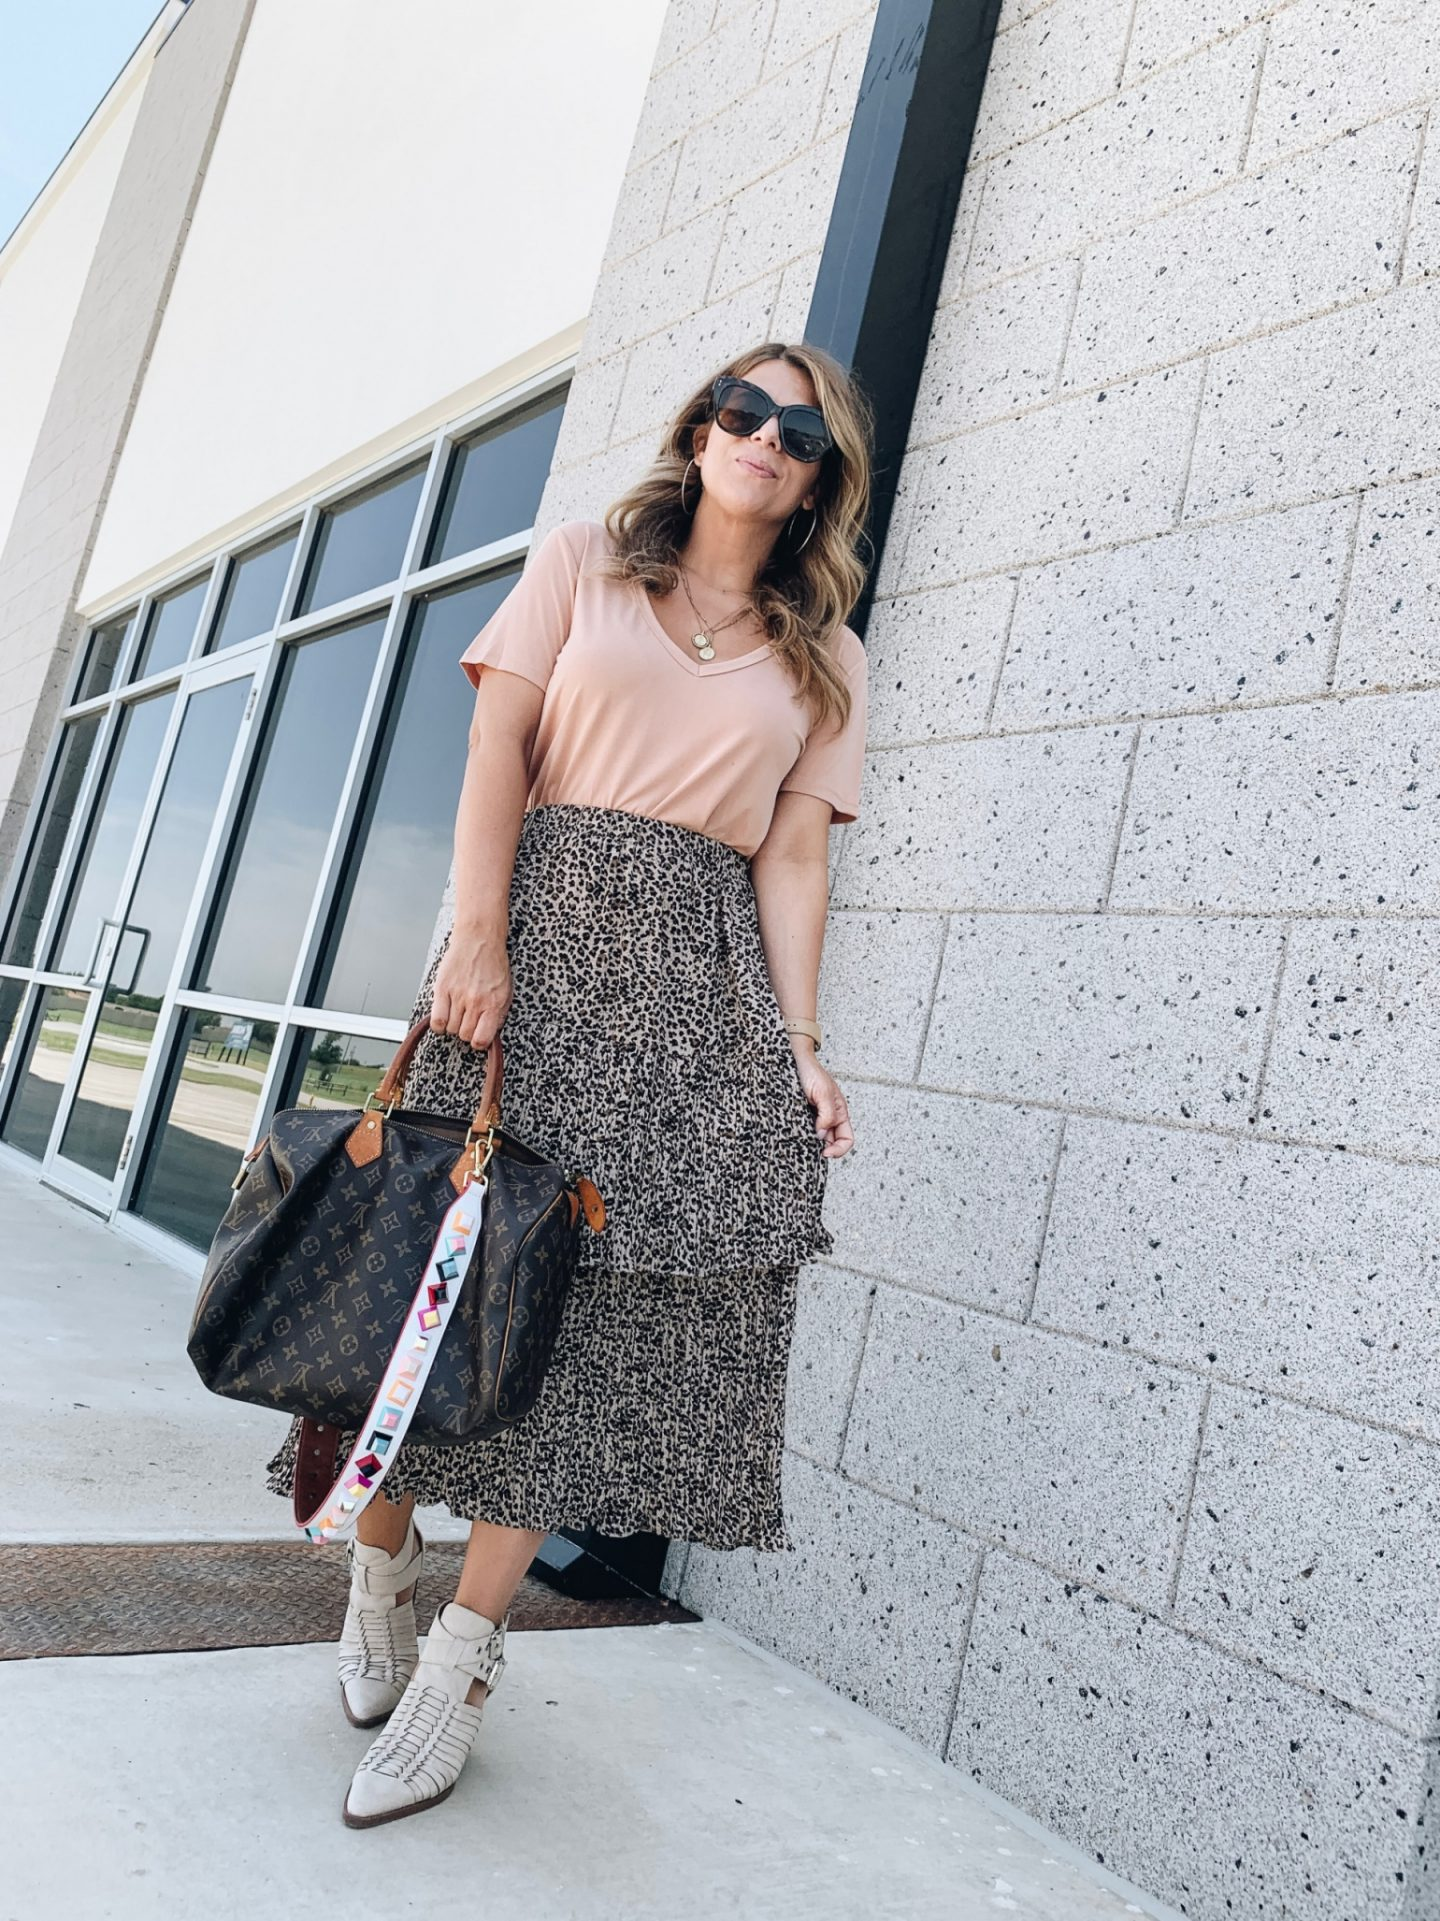 Leopard Midi Skirt, Bag Strap, Speedy 35, How to style leopard, Emerson Charles, #Shopemersoncharles, #emersoncharles